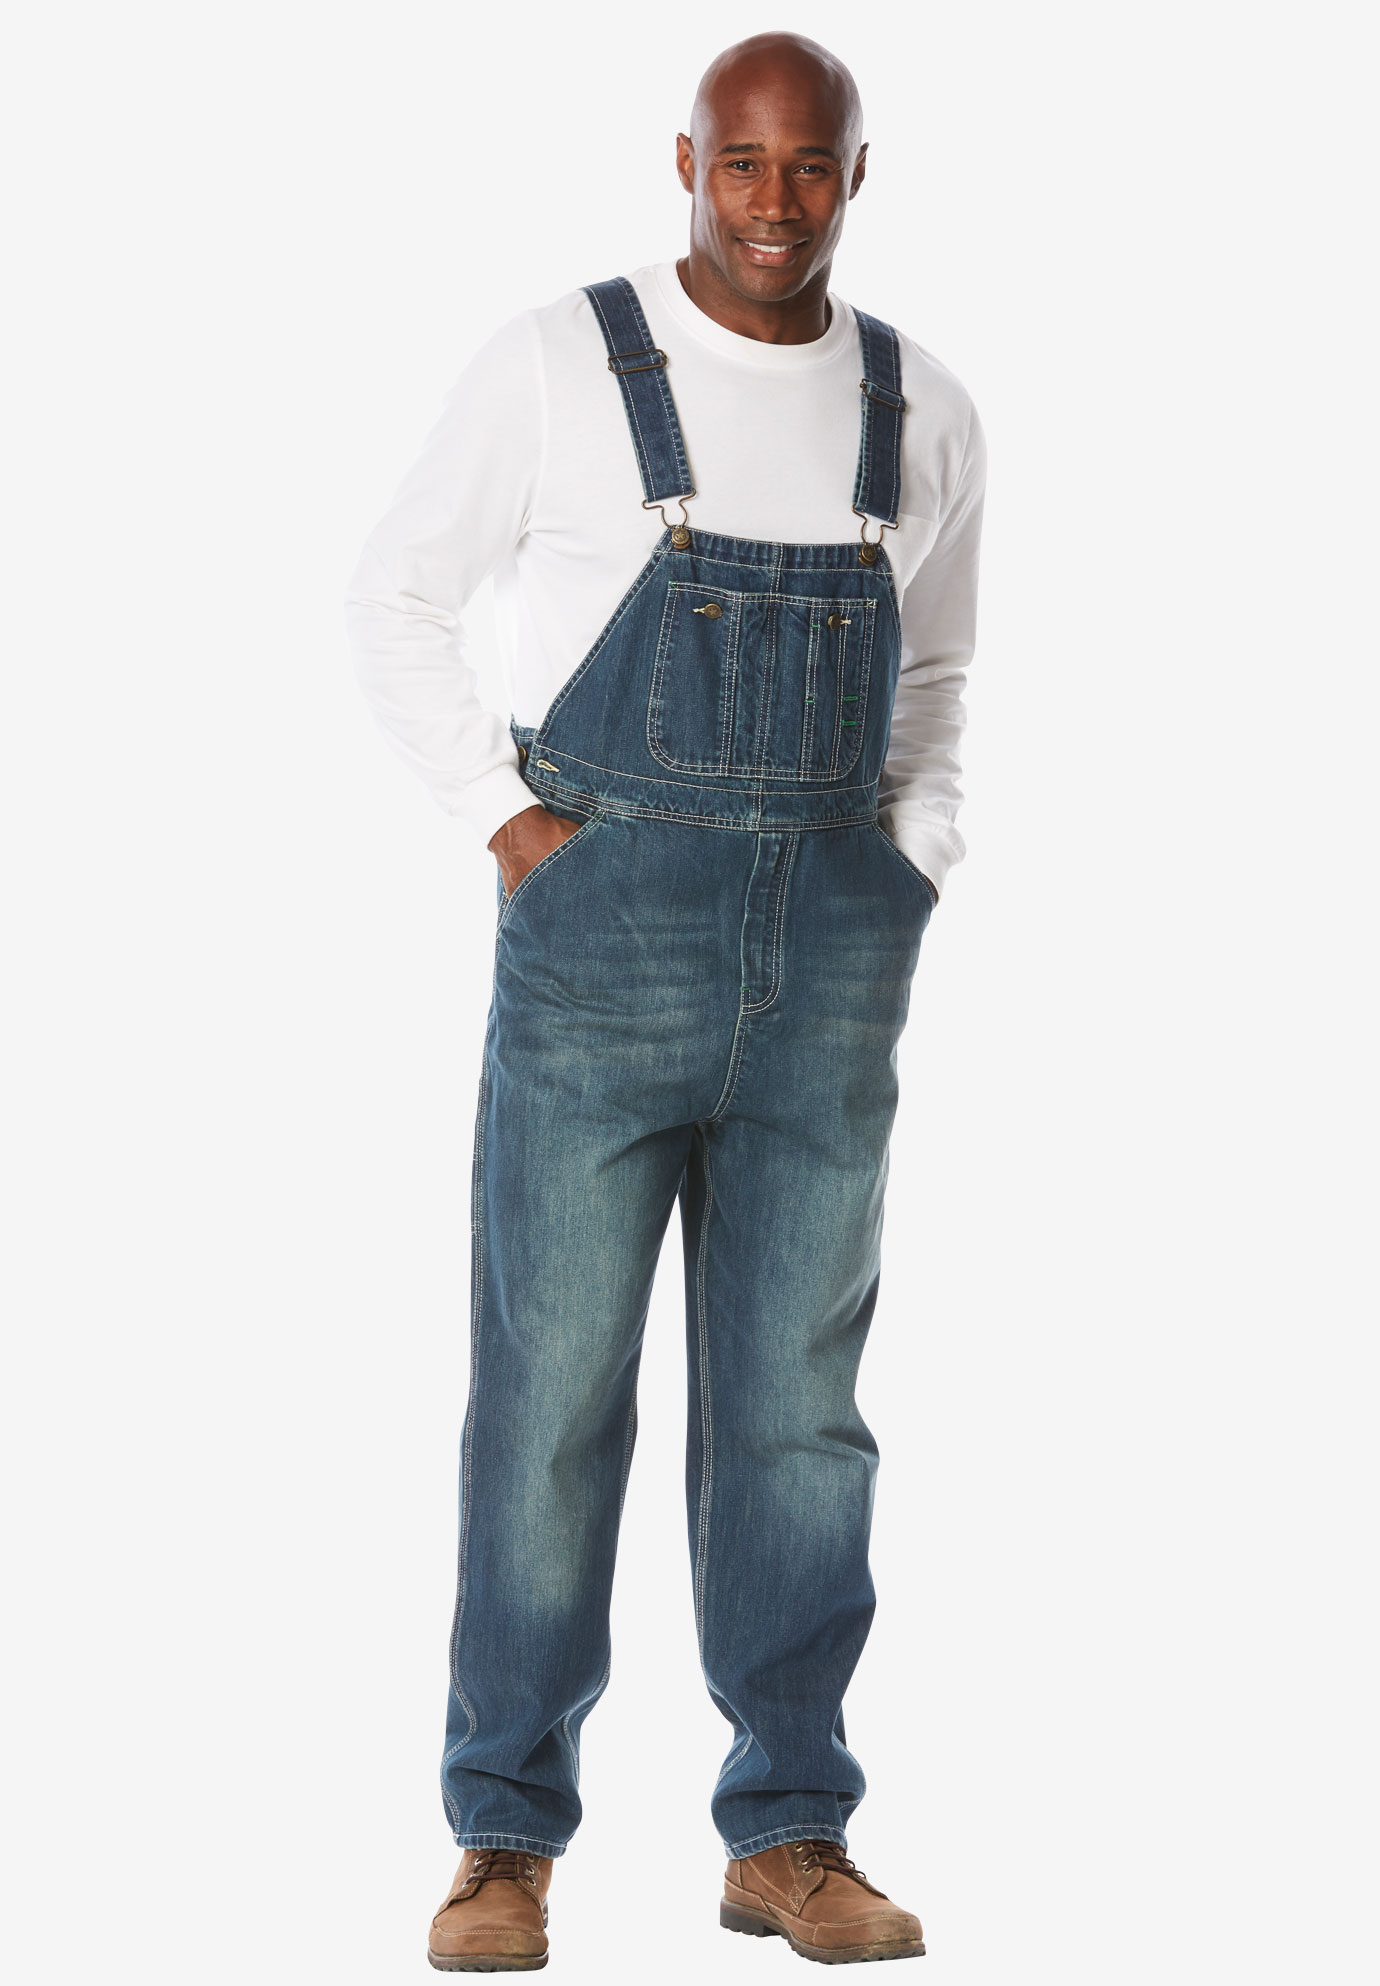 b8182365a62eb Boulder Creek® Denim Overalls| Big and Tall All Jeans | King Size